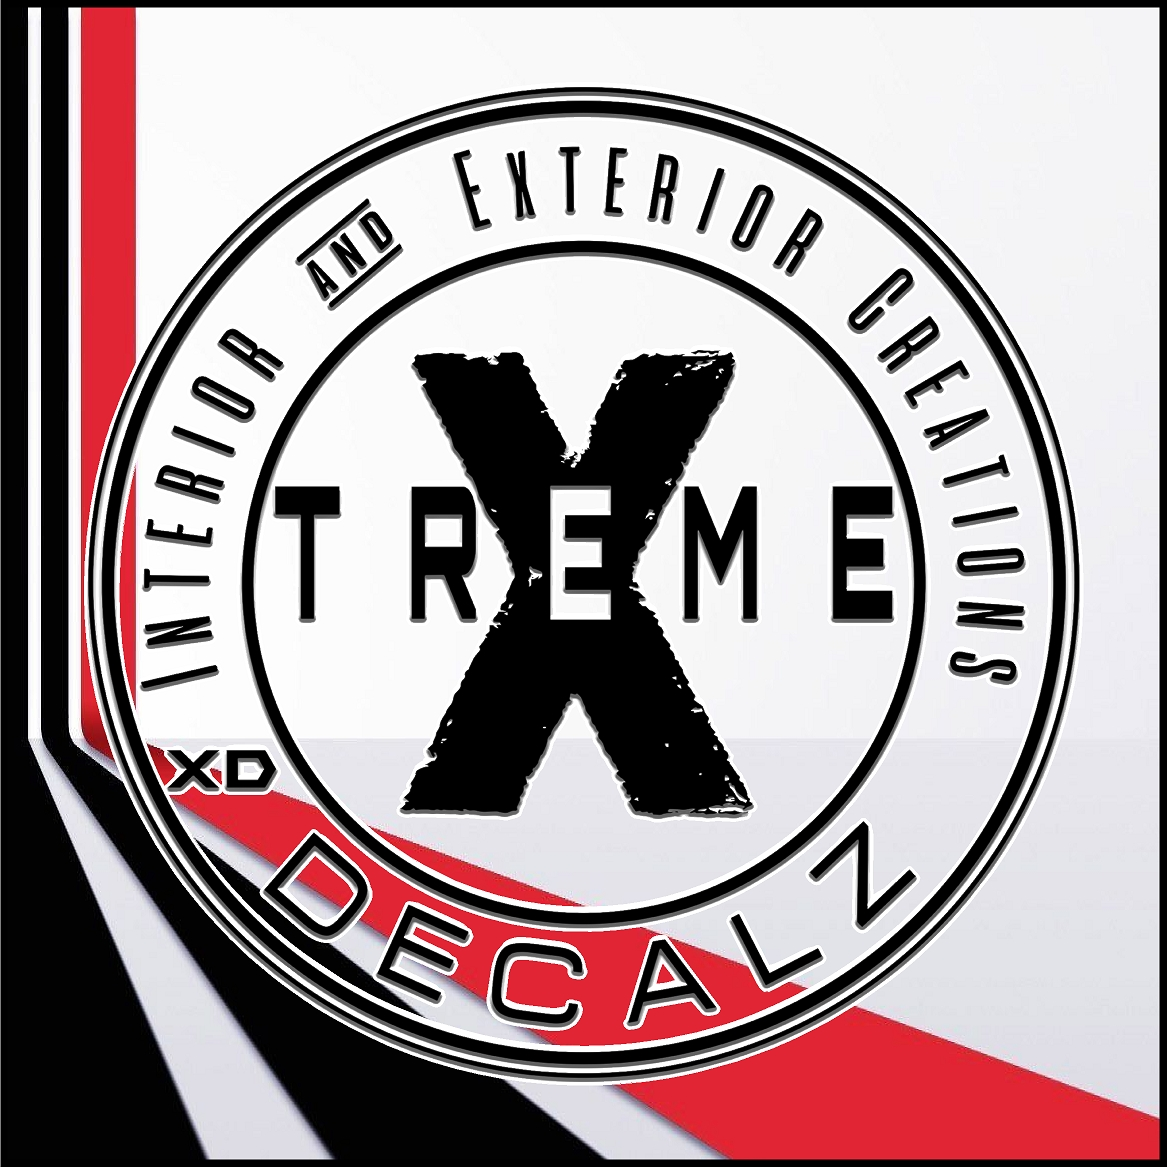 Home xtreme decalz